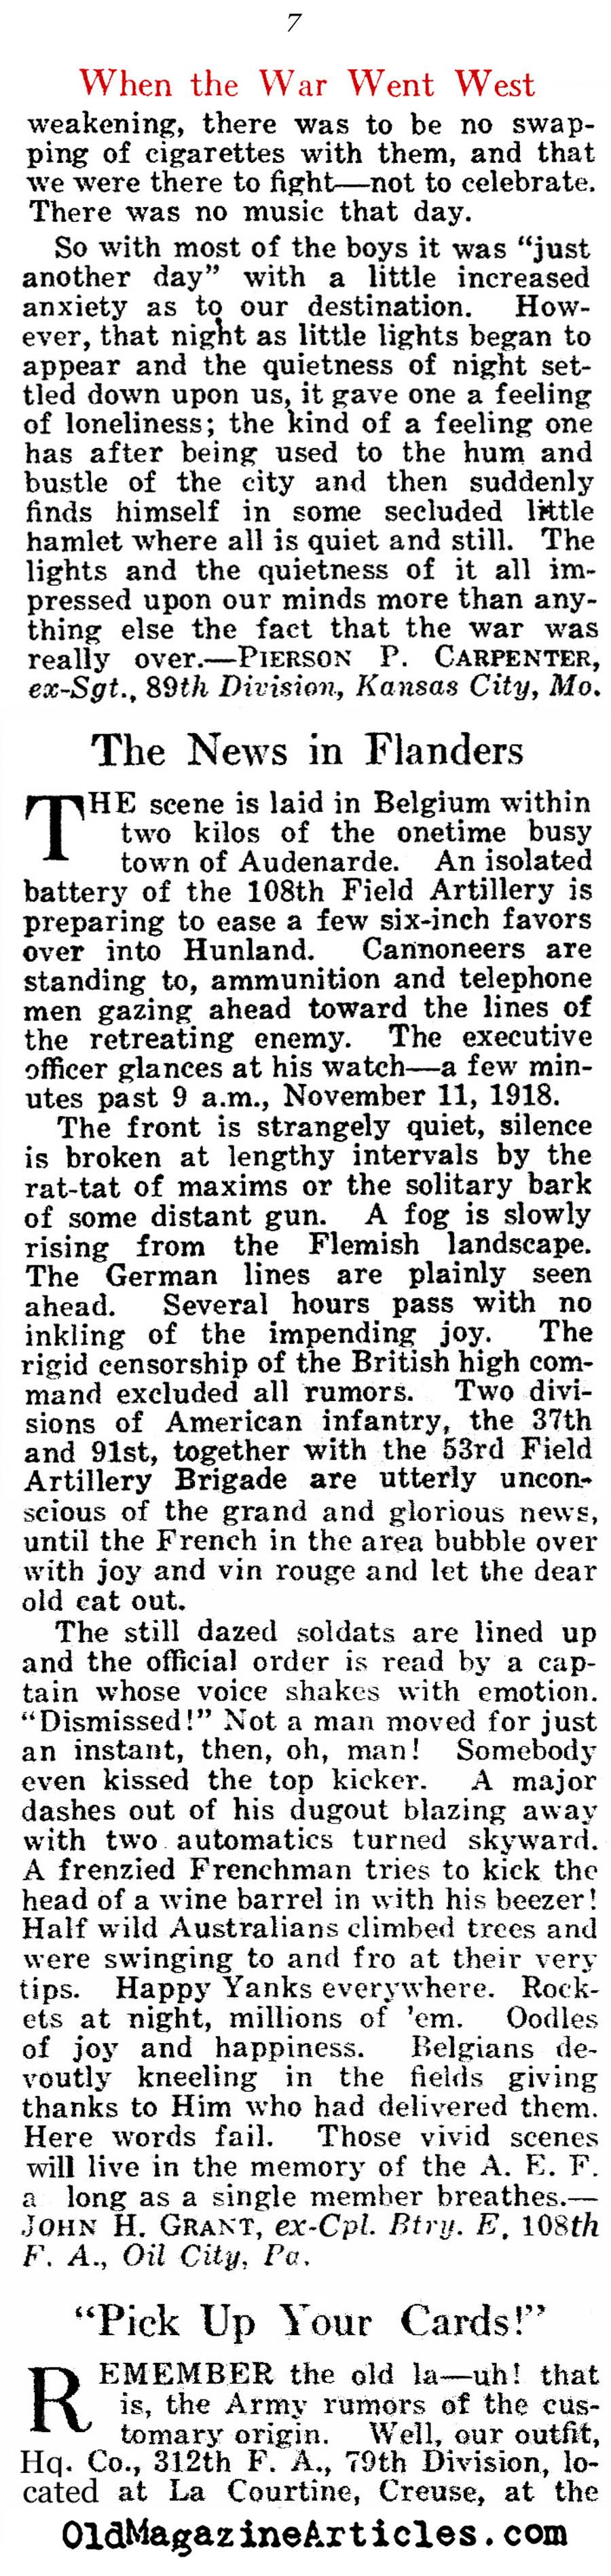 Where Were You When You Heard of The Armistice? (American Legion Weekly, 1921)